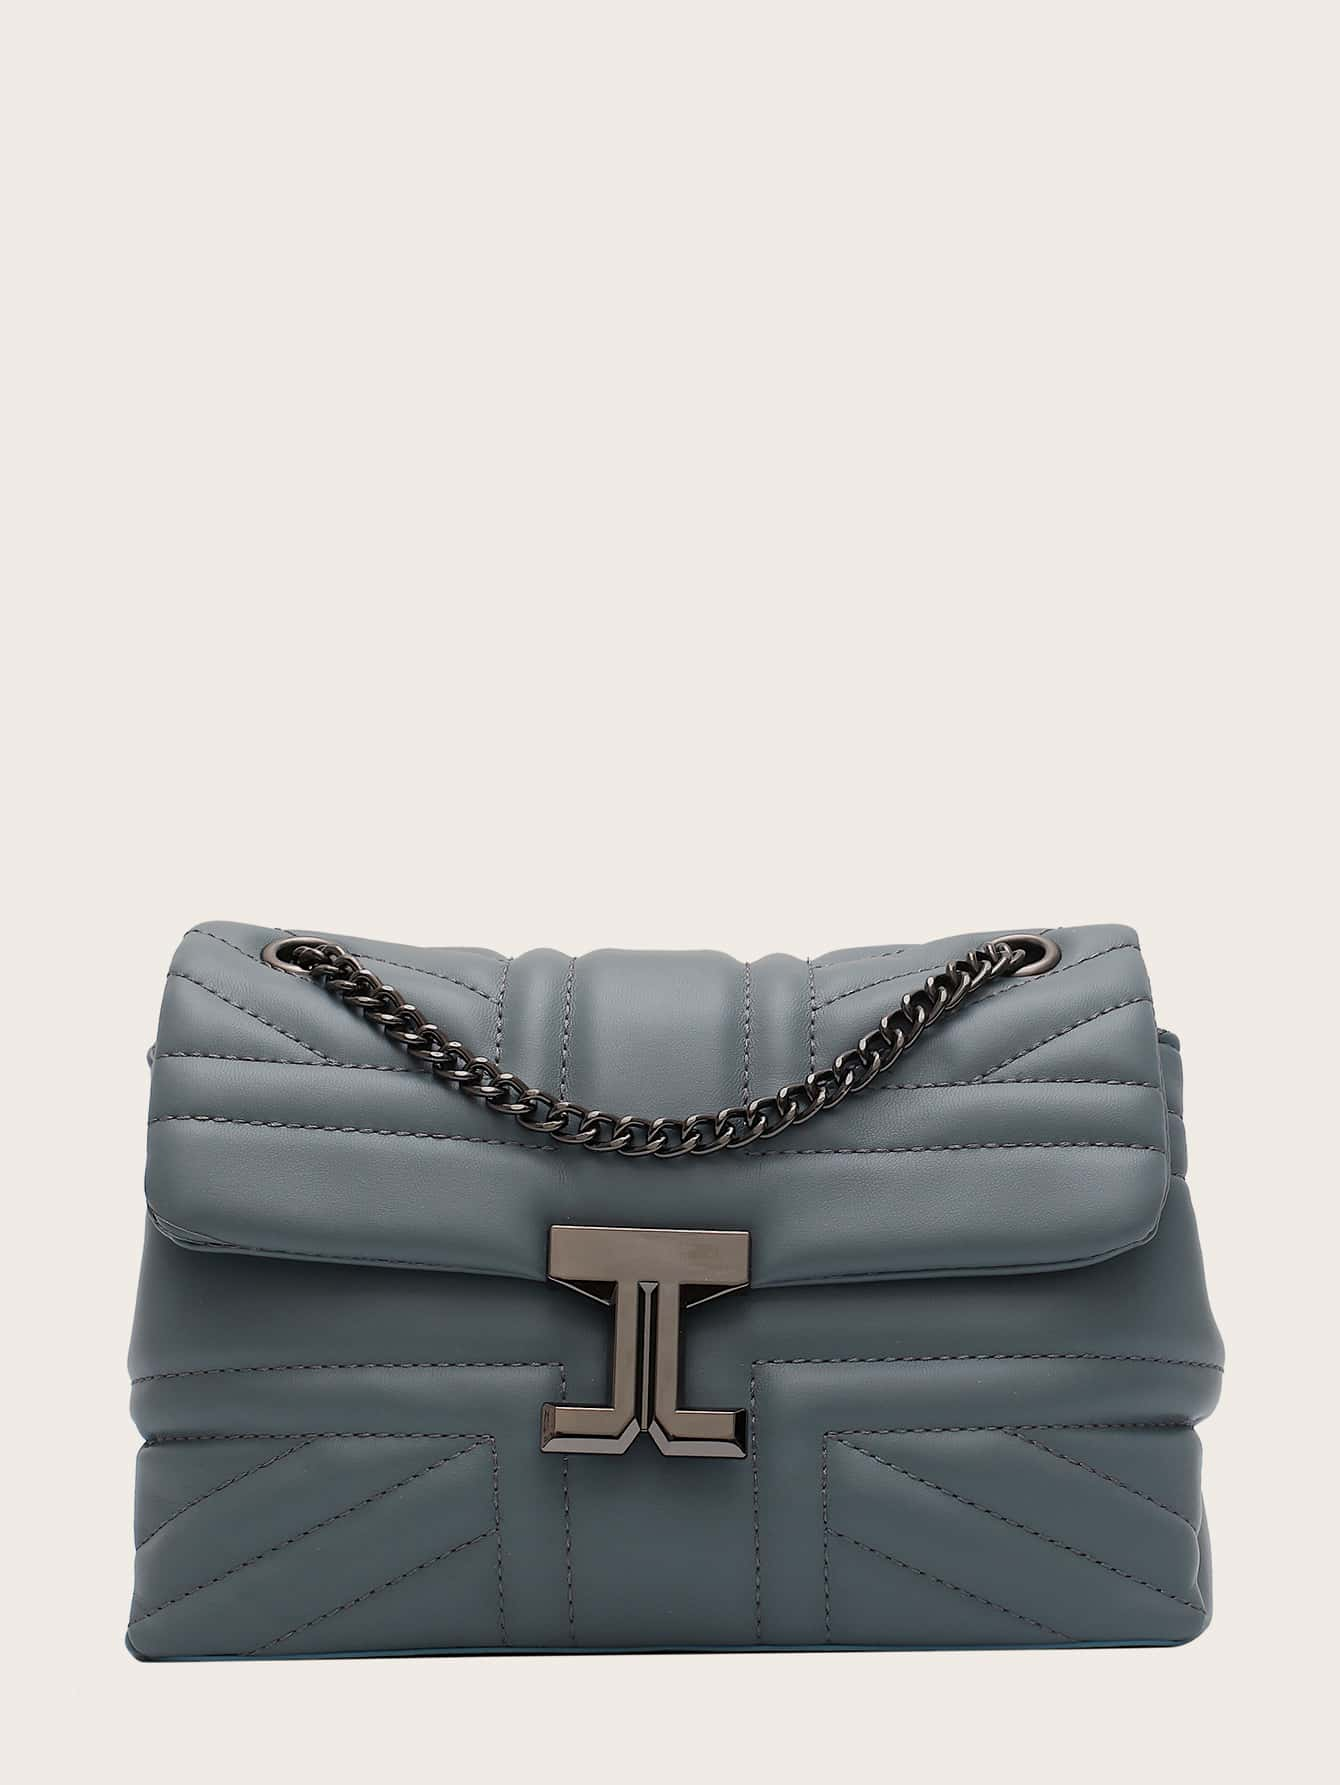 Metal Lock Quilted Chain Shoulder Bag thumbnail